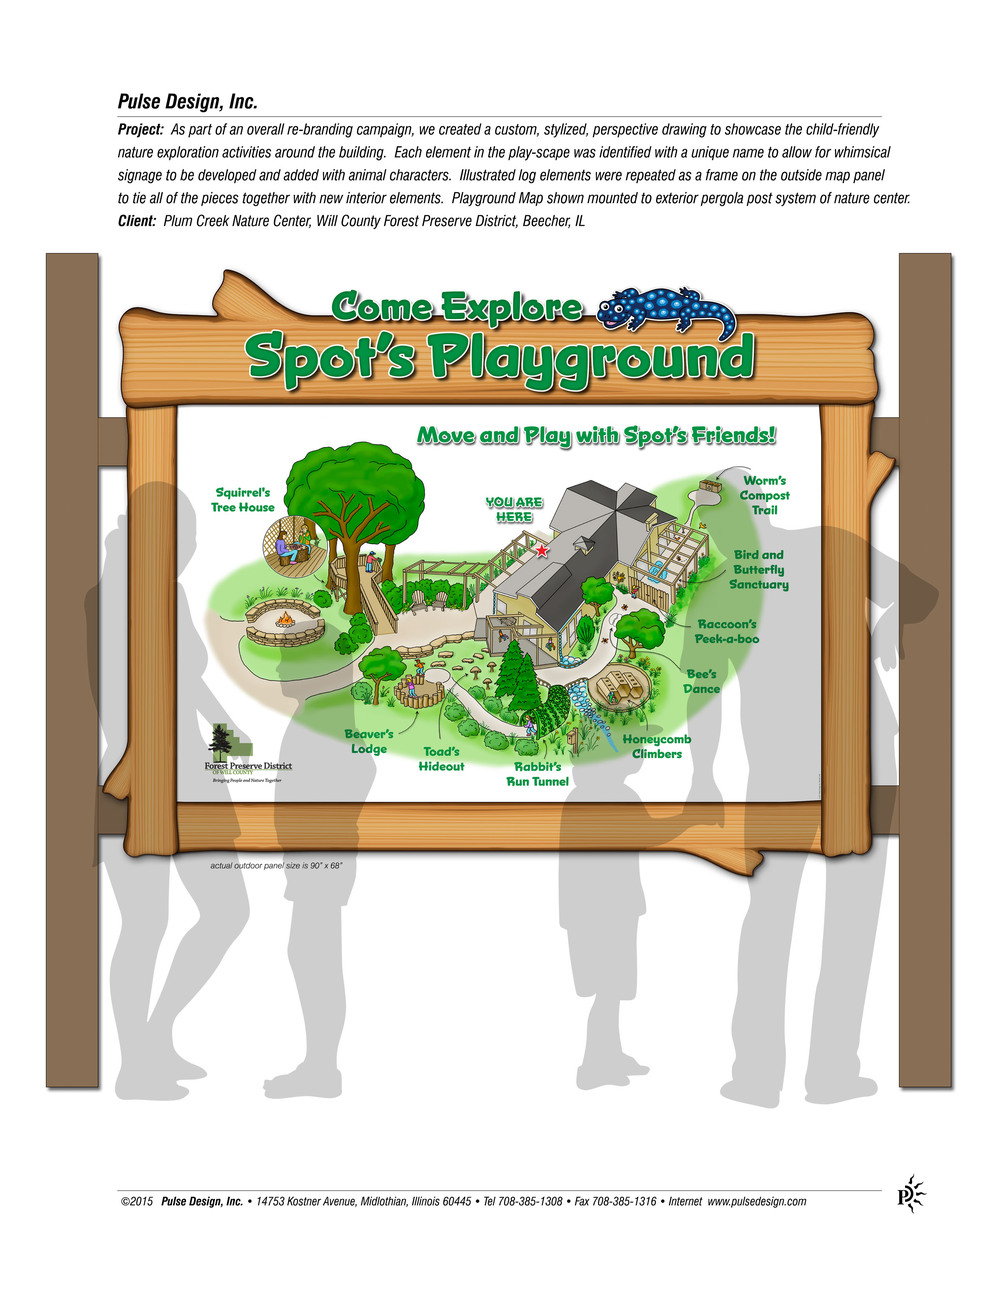 Plum-Creek-Spots-Playground-Map-Wall-Pulse-Design-Inc.jpg